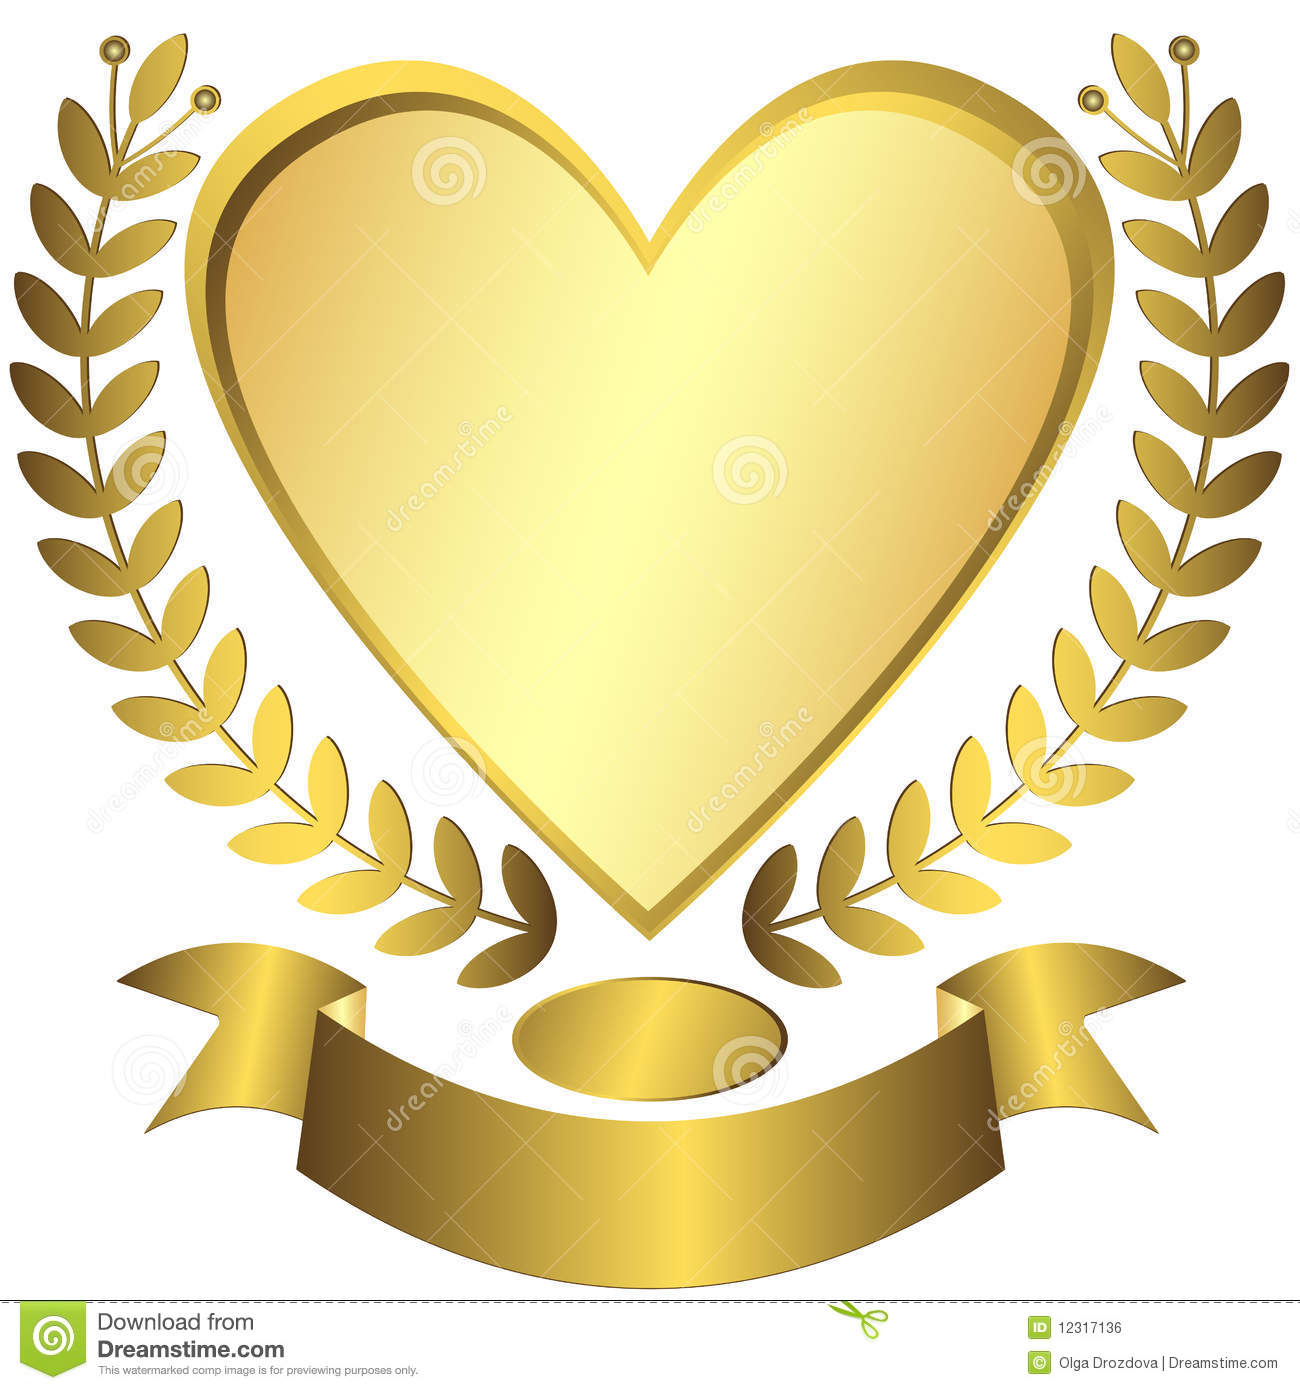 Gold Award Ribbon Vector